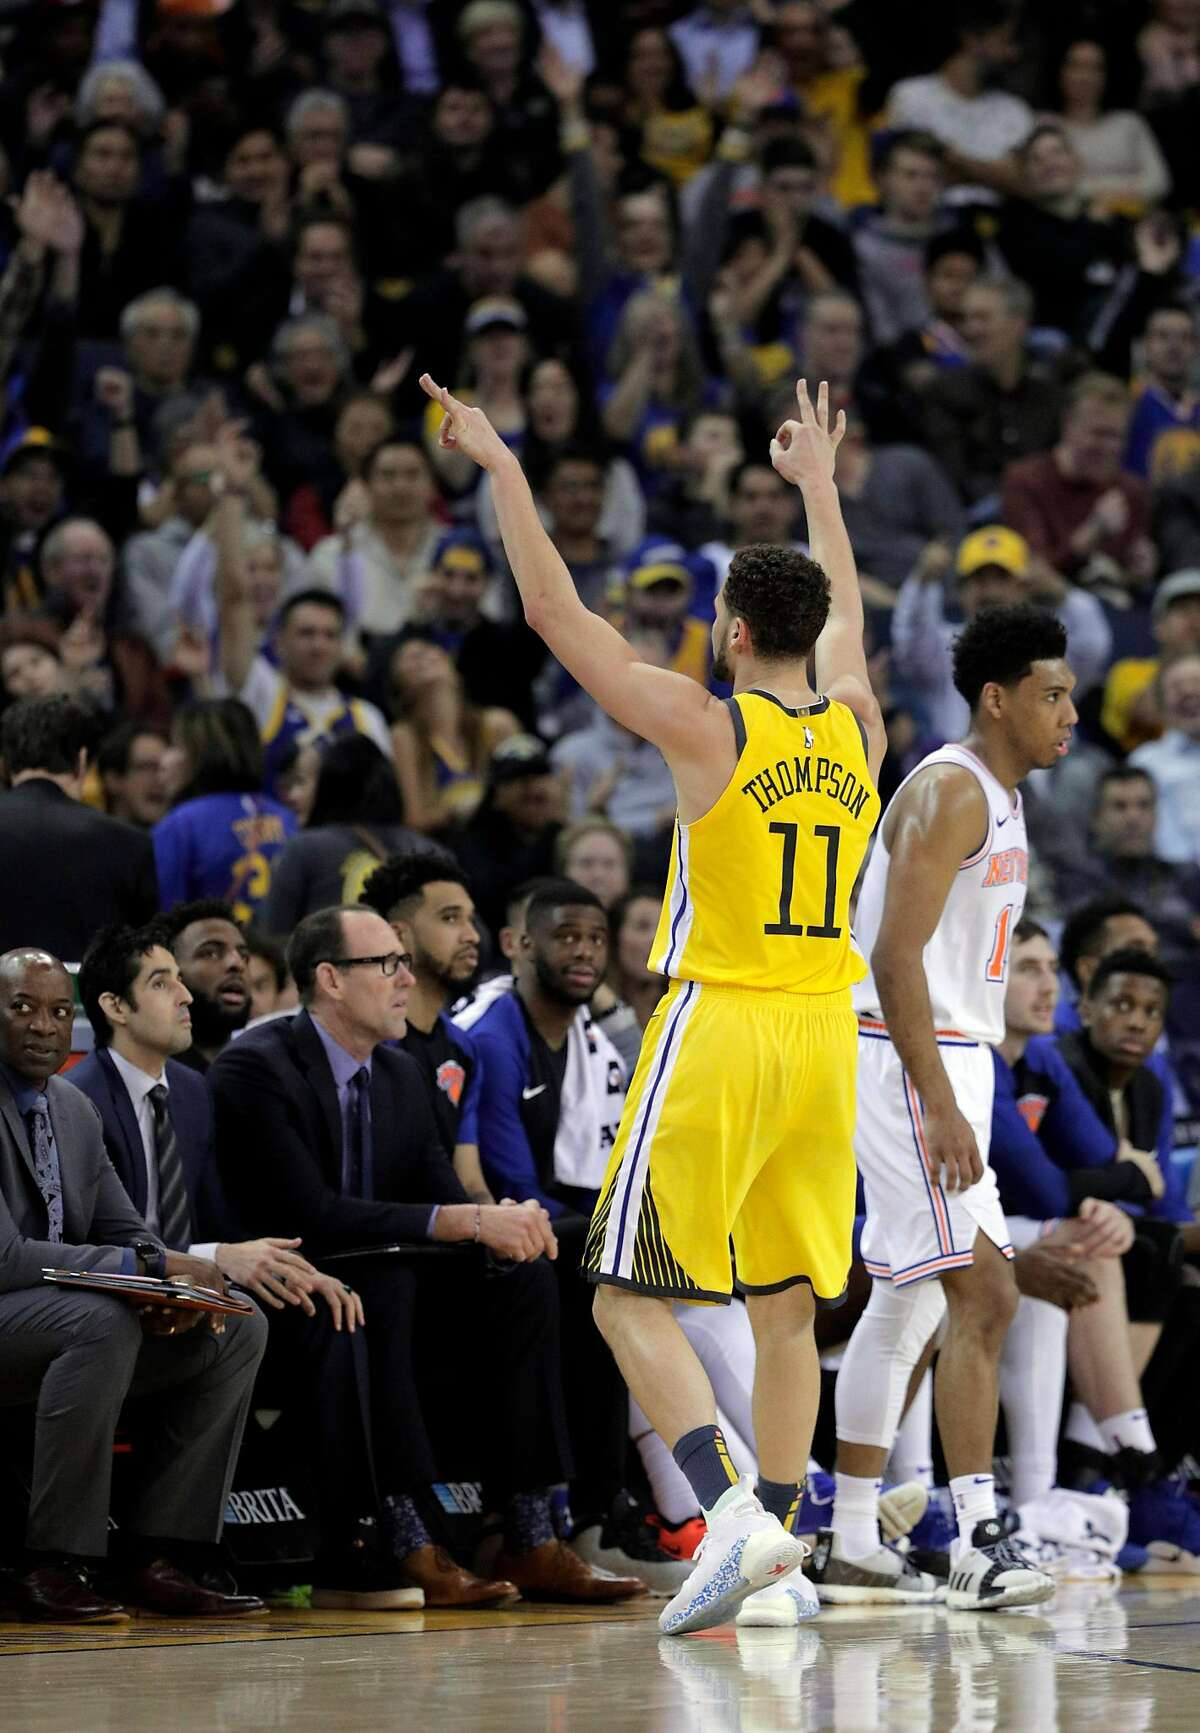 Klay Thompson (11) gestures to the crowd after hitting a three pointer late in the second half as the Golden State Warriors played the New York Knicks at Oracle Arena in Oakland, Calif., on Tuesday, January 8, 2019.